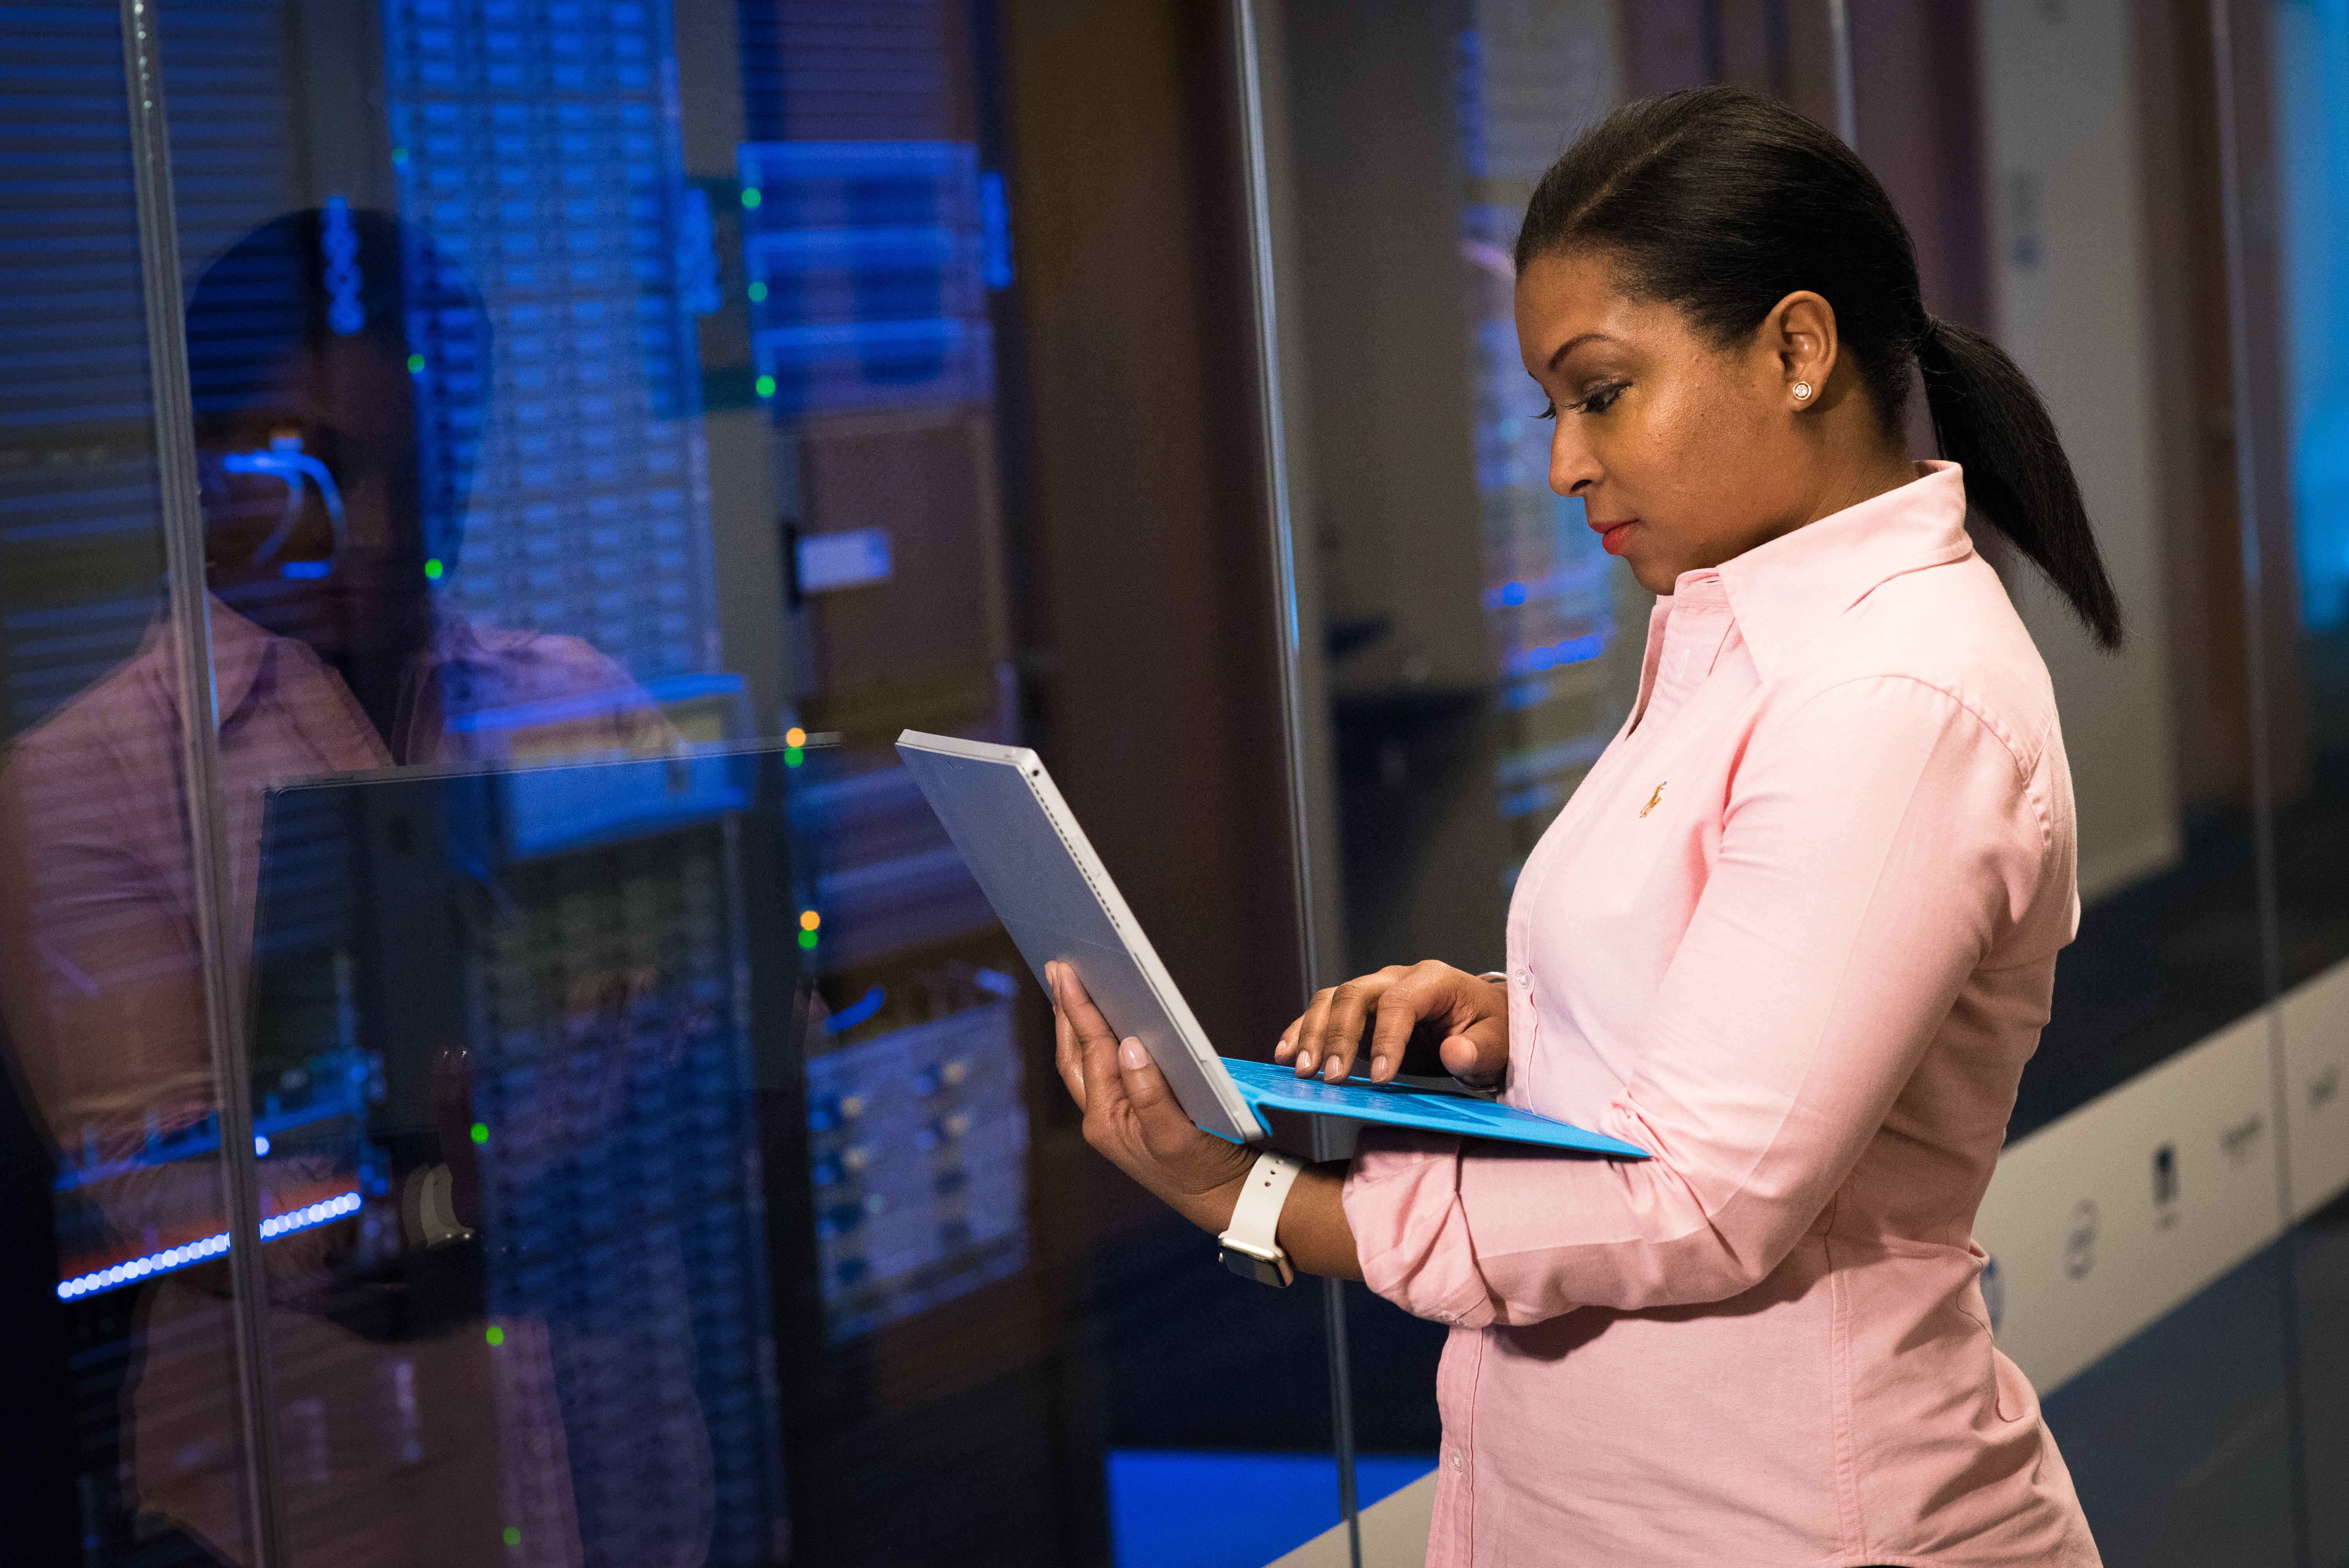 woman with laptop working on servers